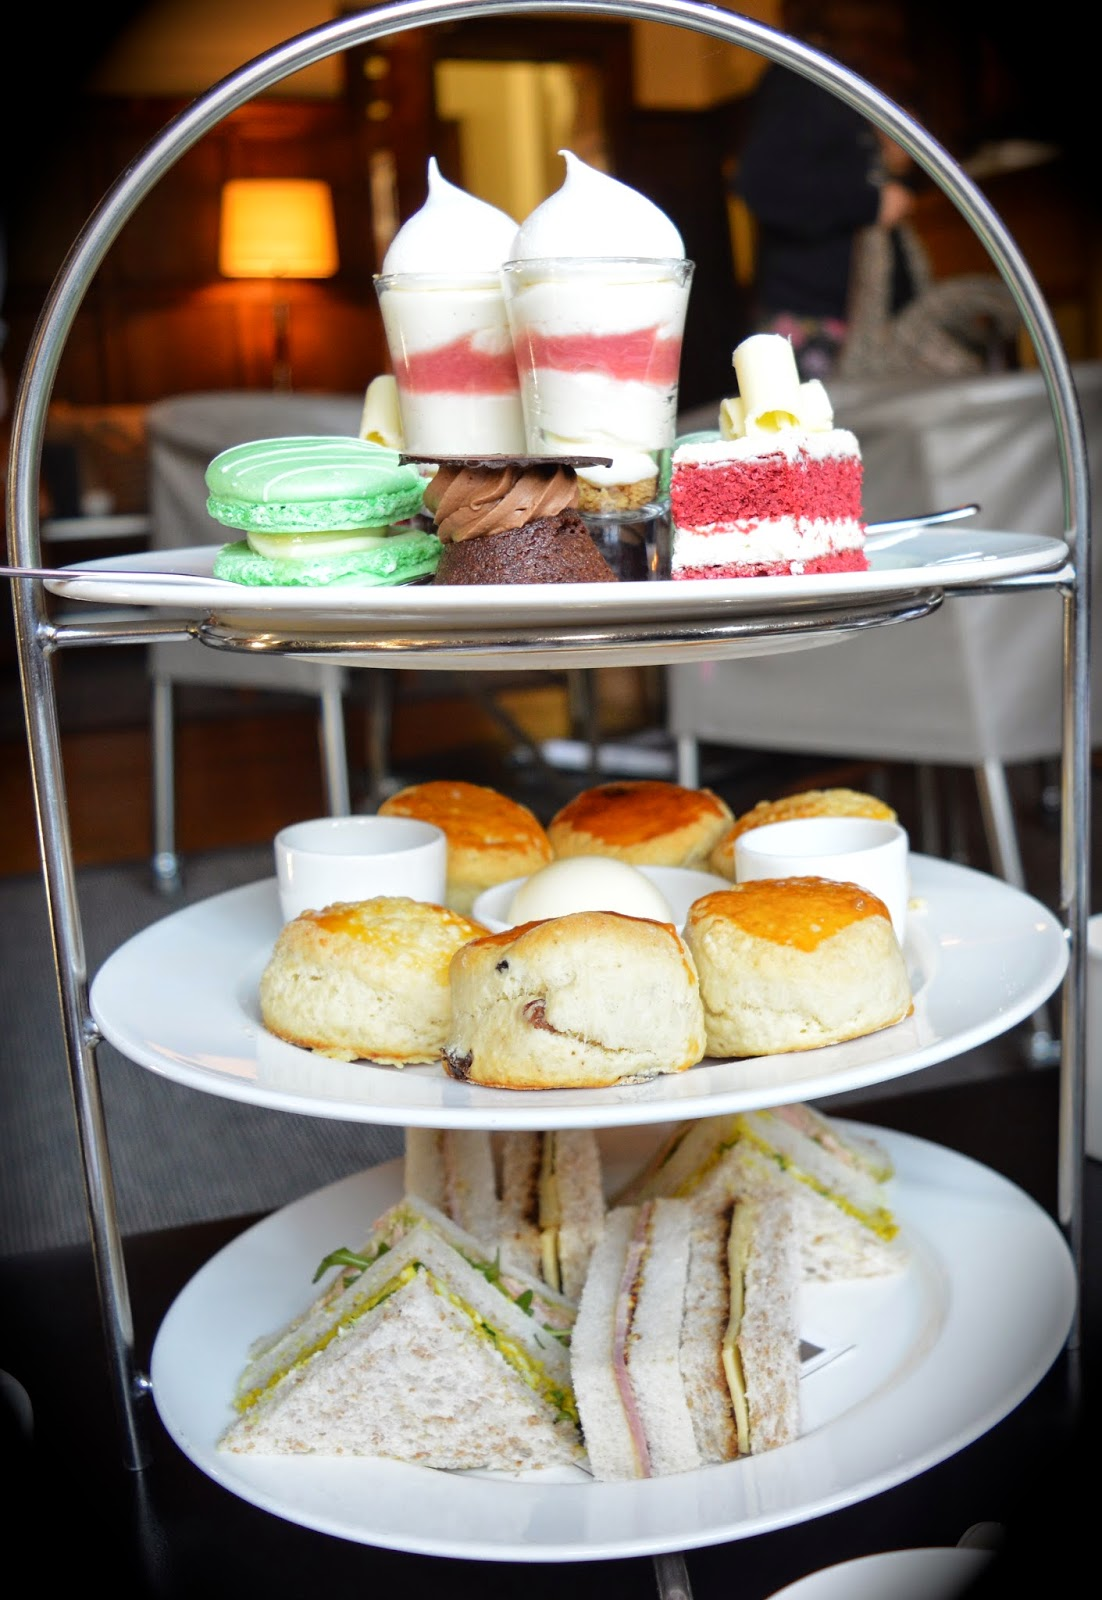 11 Fun Date Ideas in Newcastle Upon Tyne - Jesmond Dene House Afternoon Tea